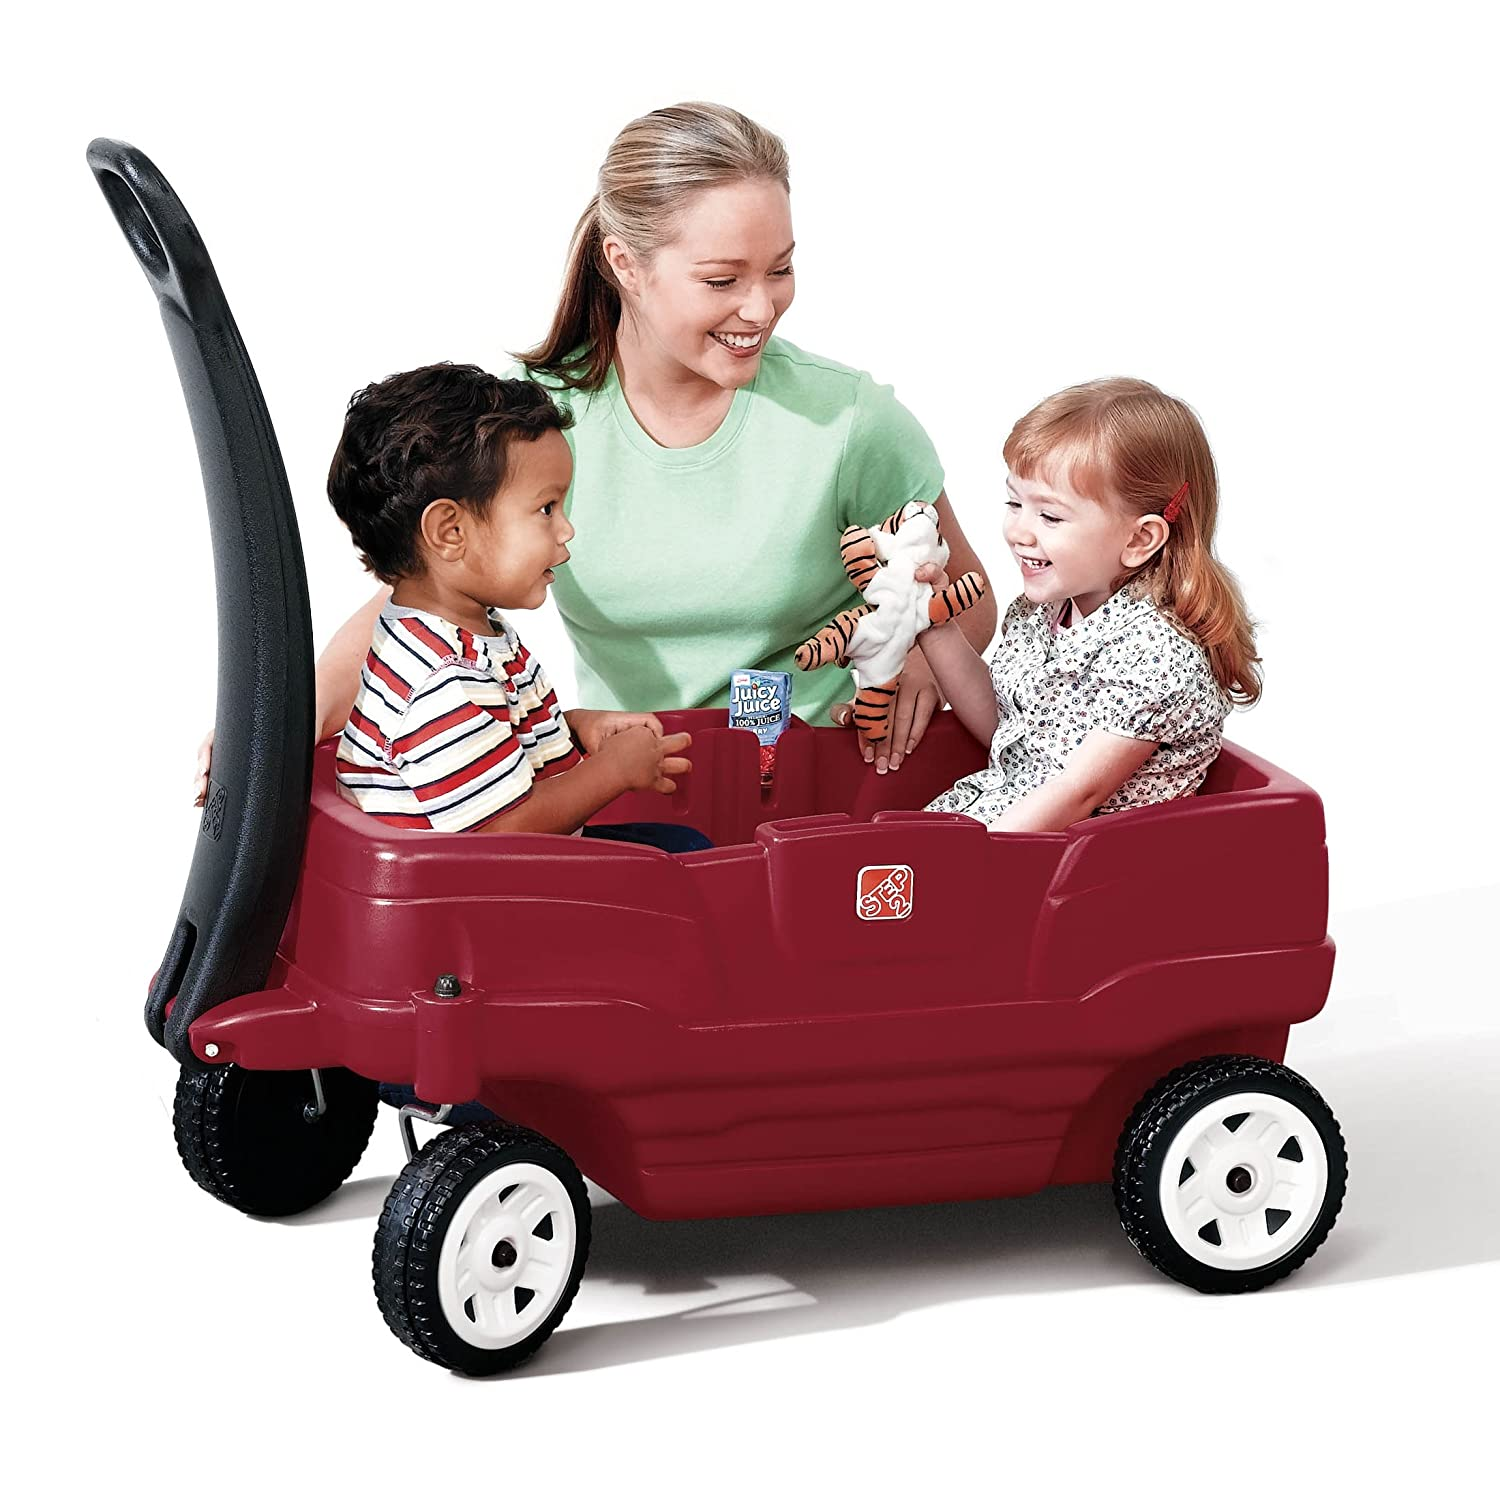 Top 10 Best Wagons for Kids Reviews in 2020 2